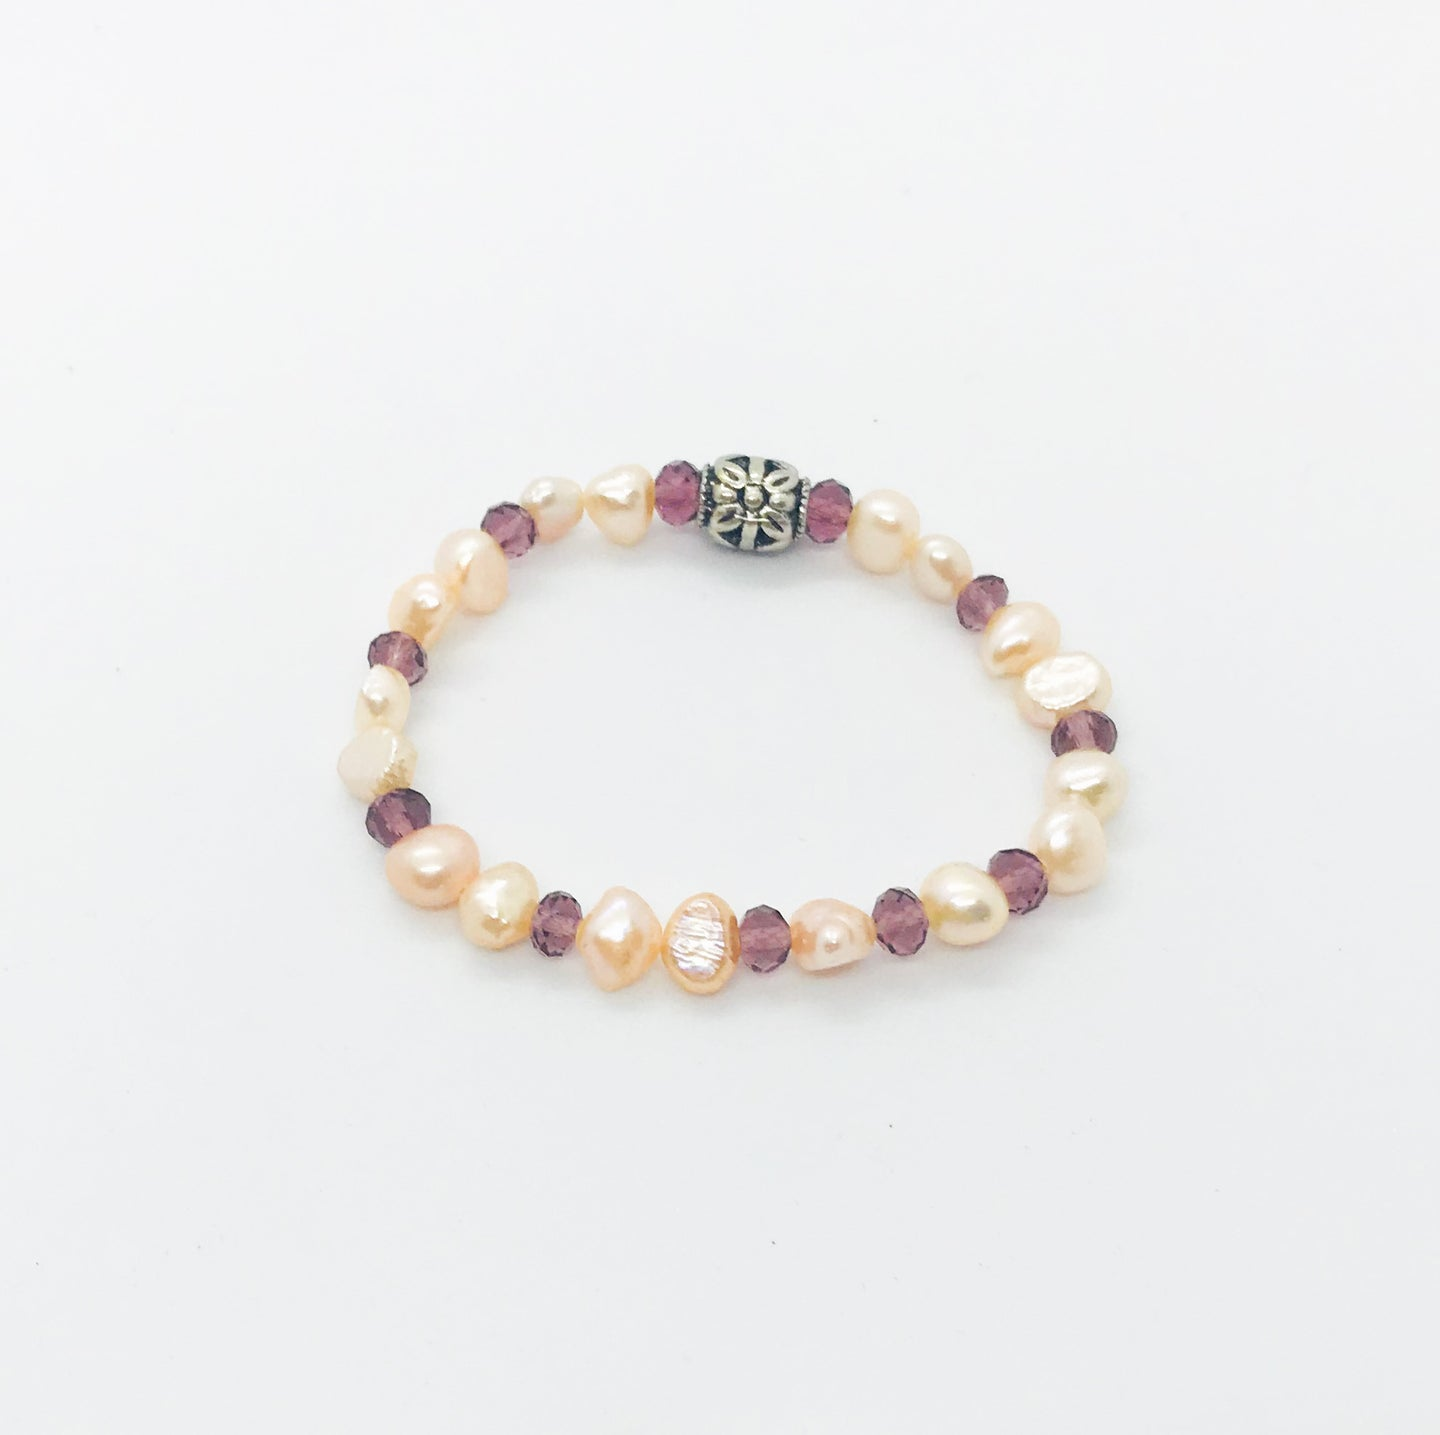 Glass Bead Stretchy Bracelet - B615